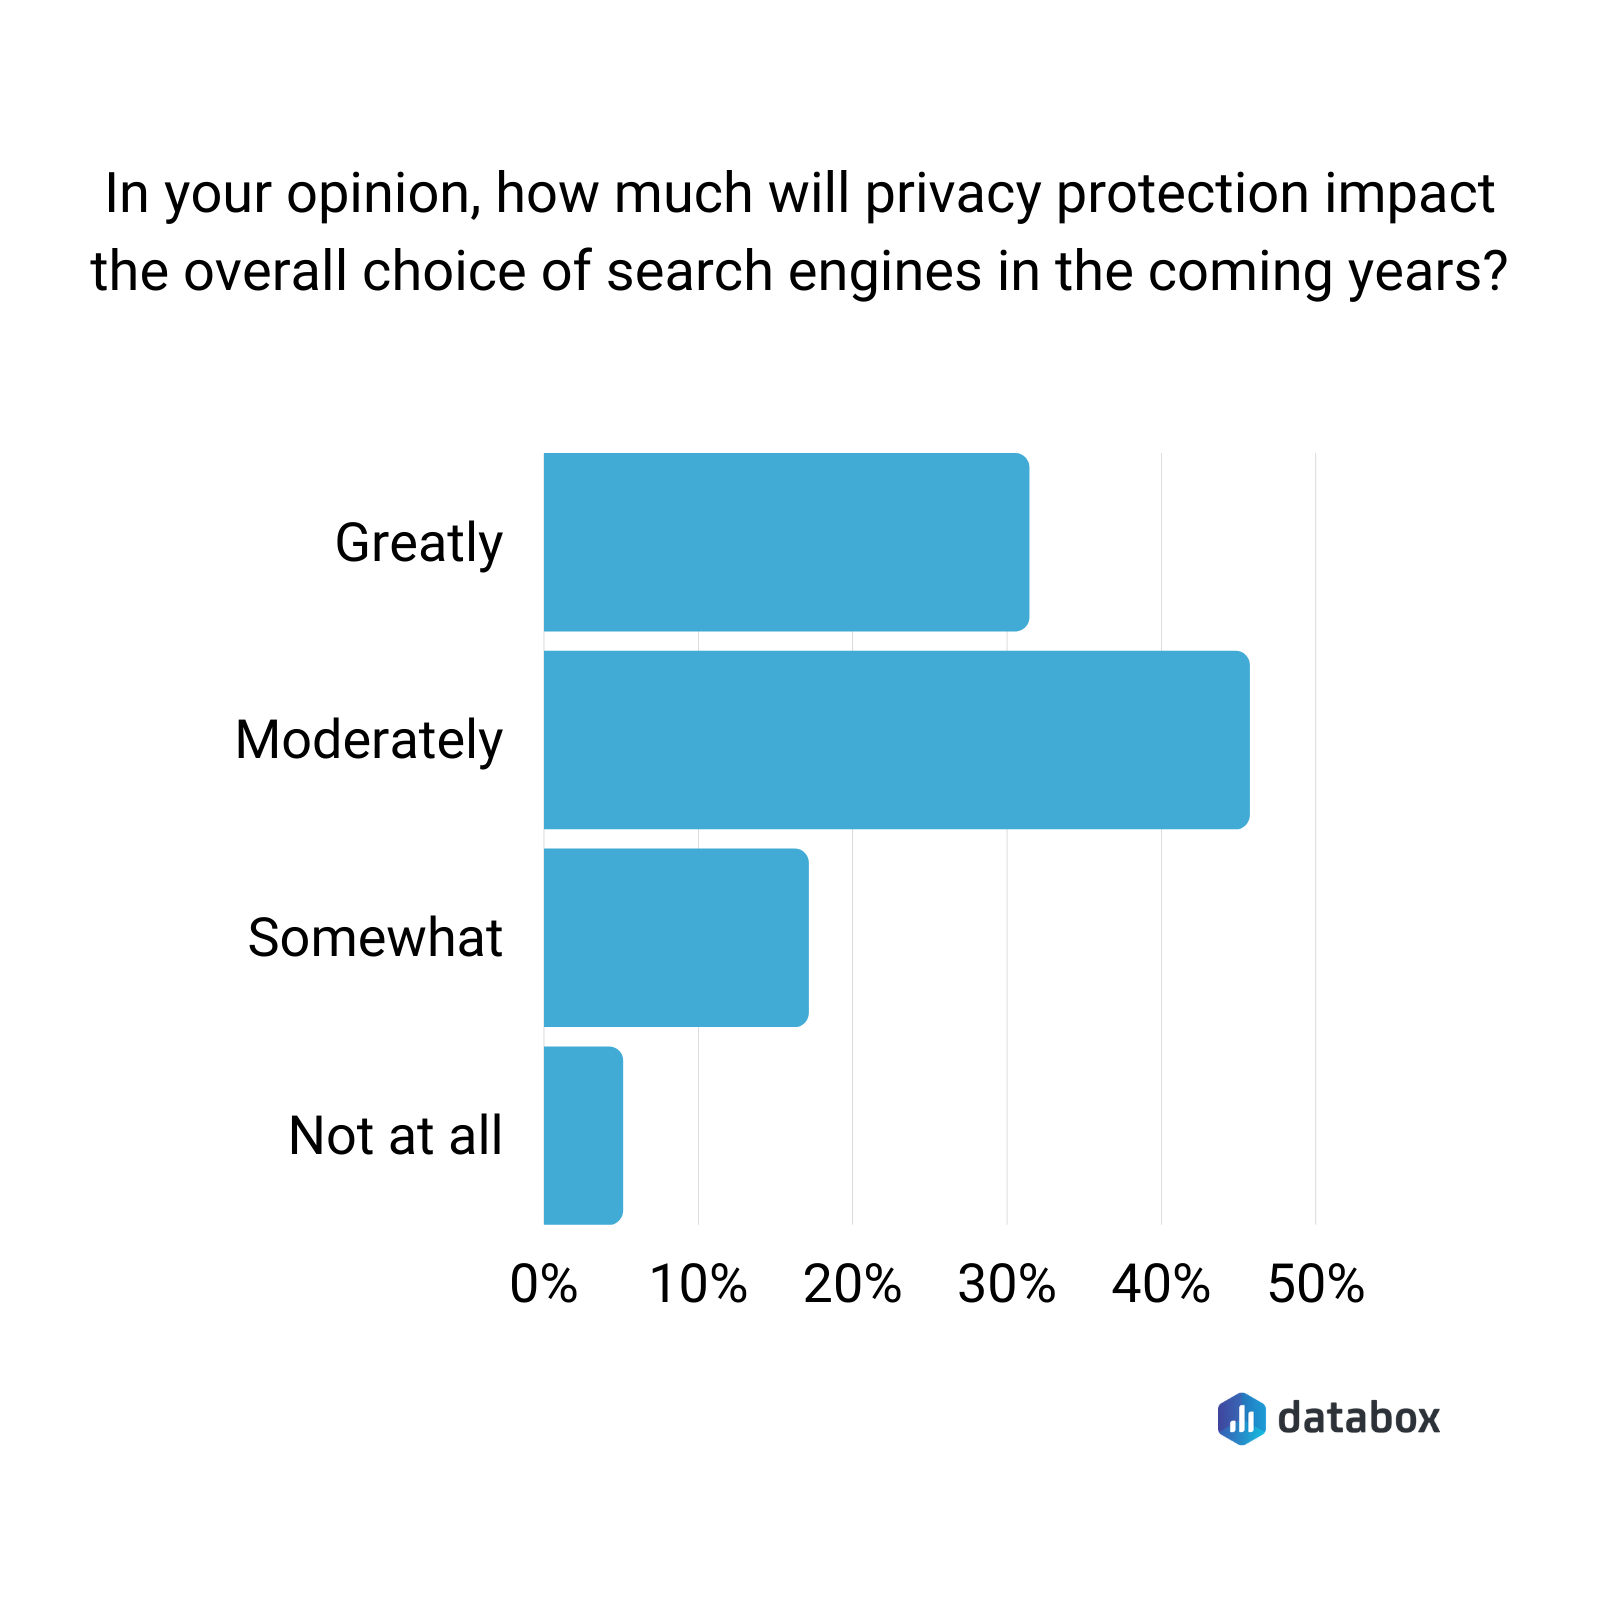 how much will privacy protection impact the overall choice of search engines in the coming years